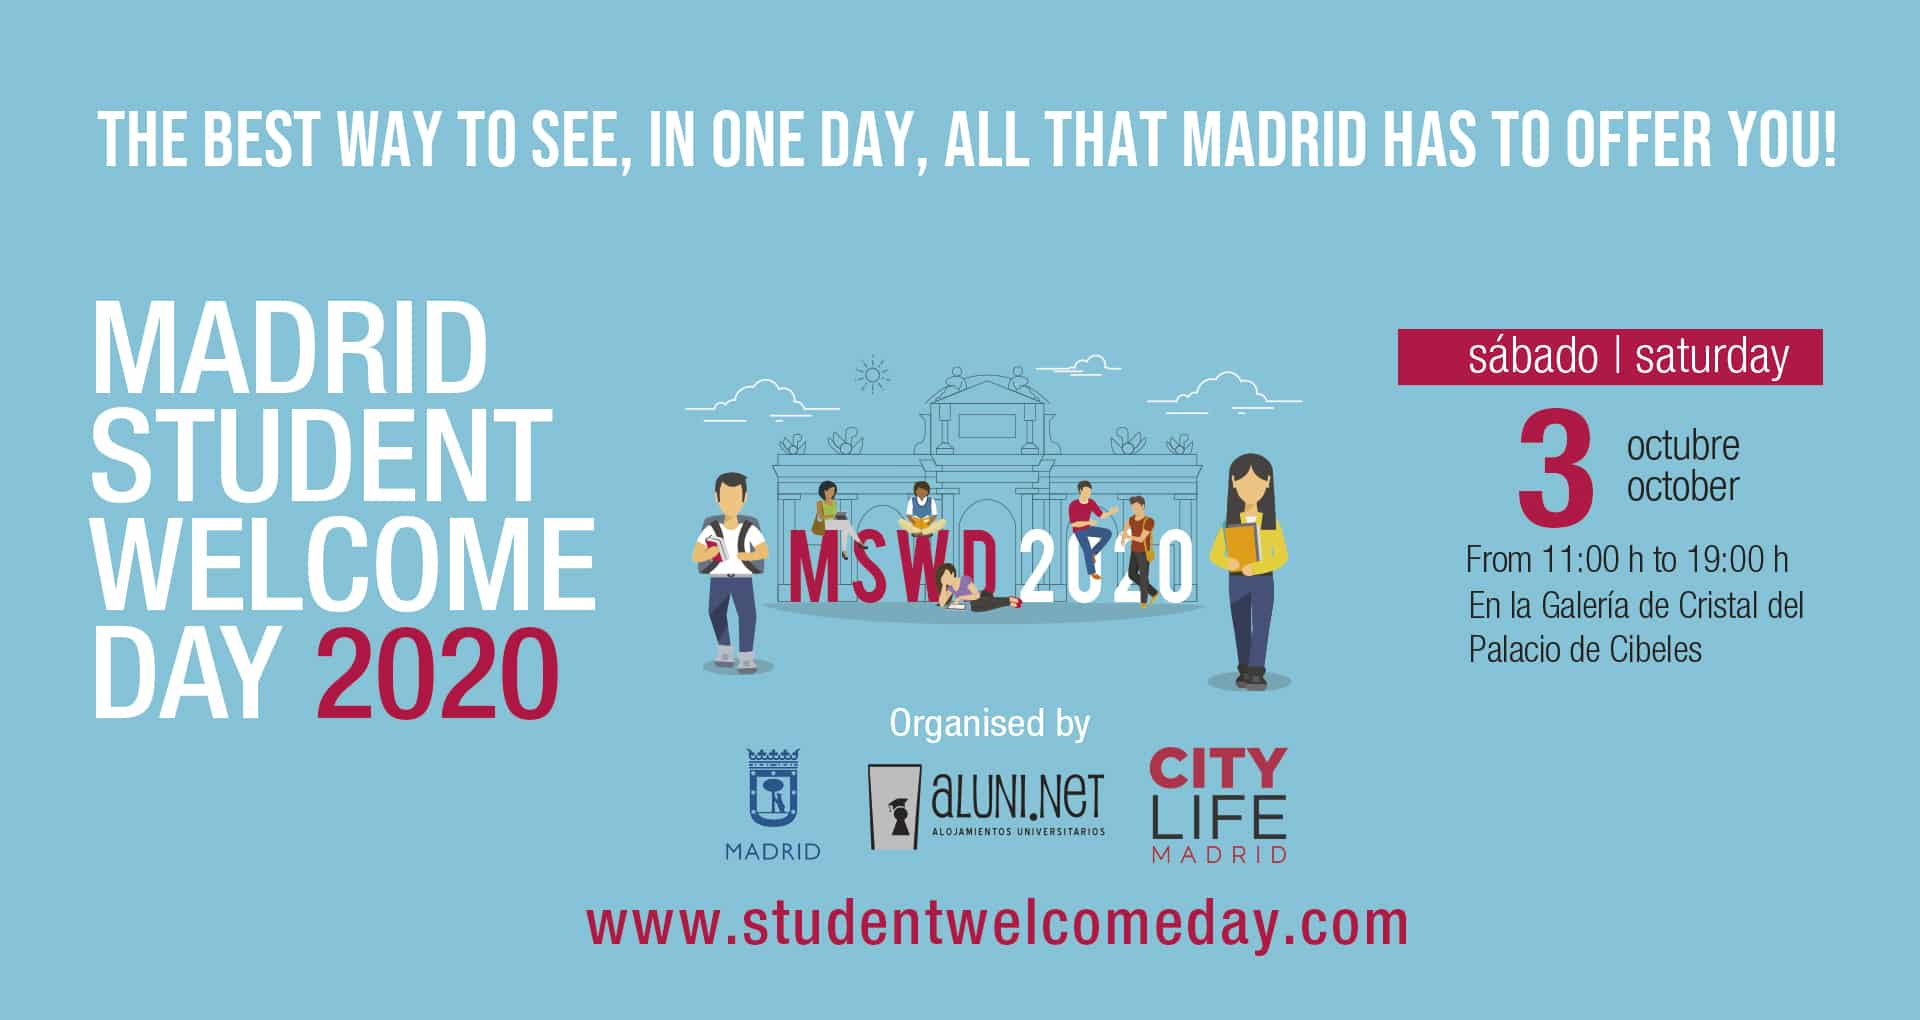 MADRID STUDENT WELCOME DAY 2020